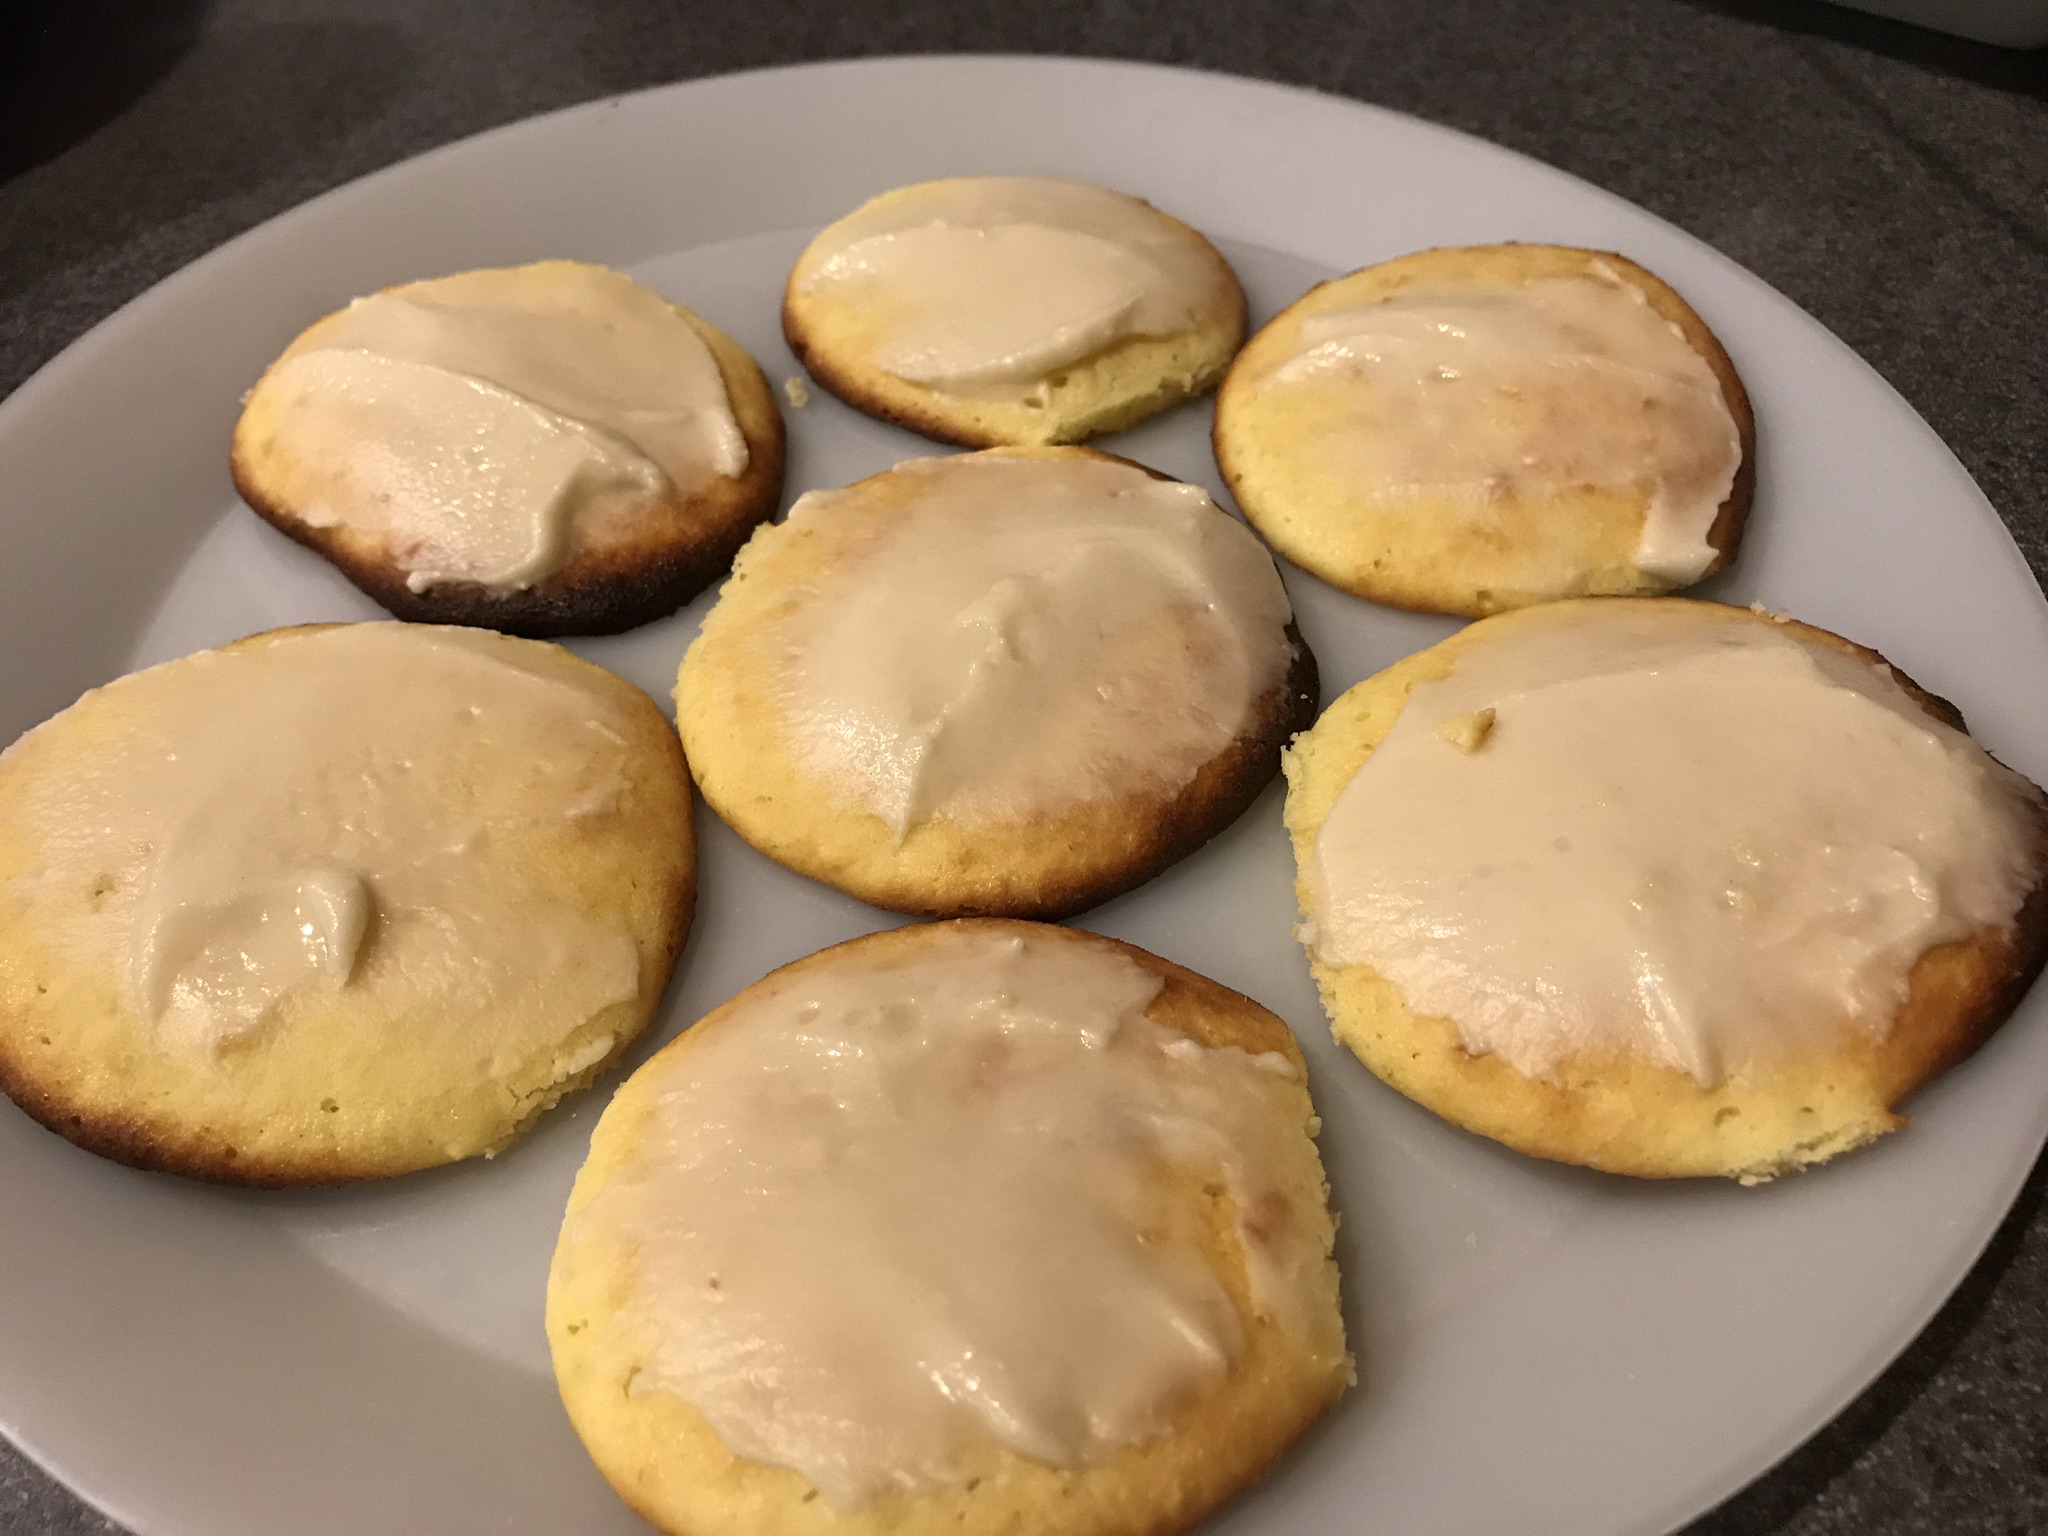 Sugar-free Glazed Lemon Cookies